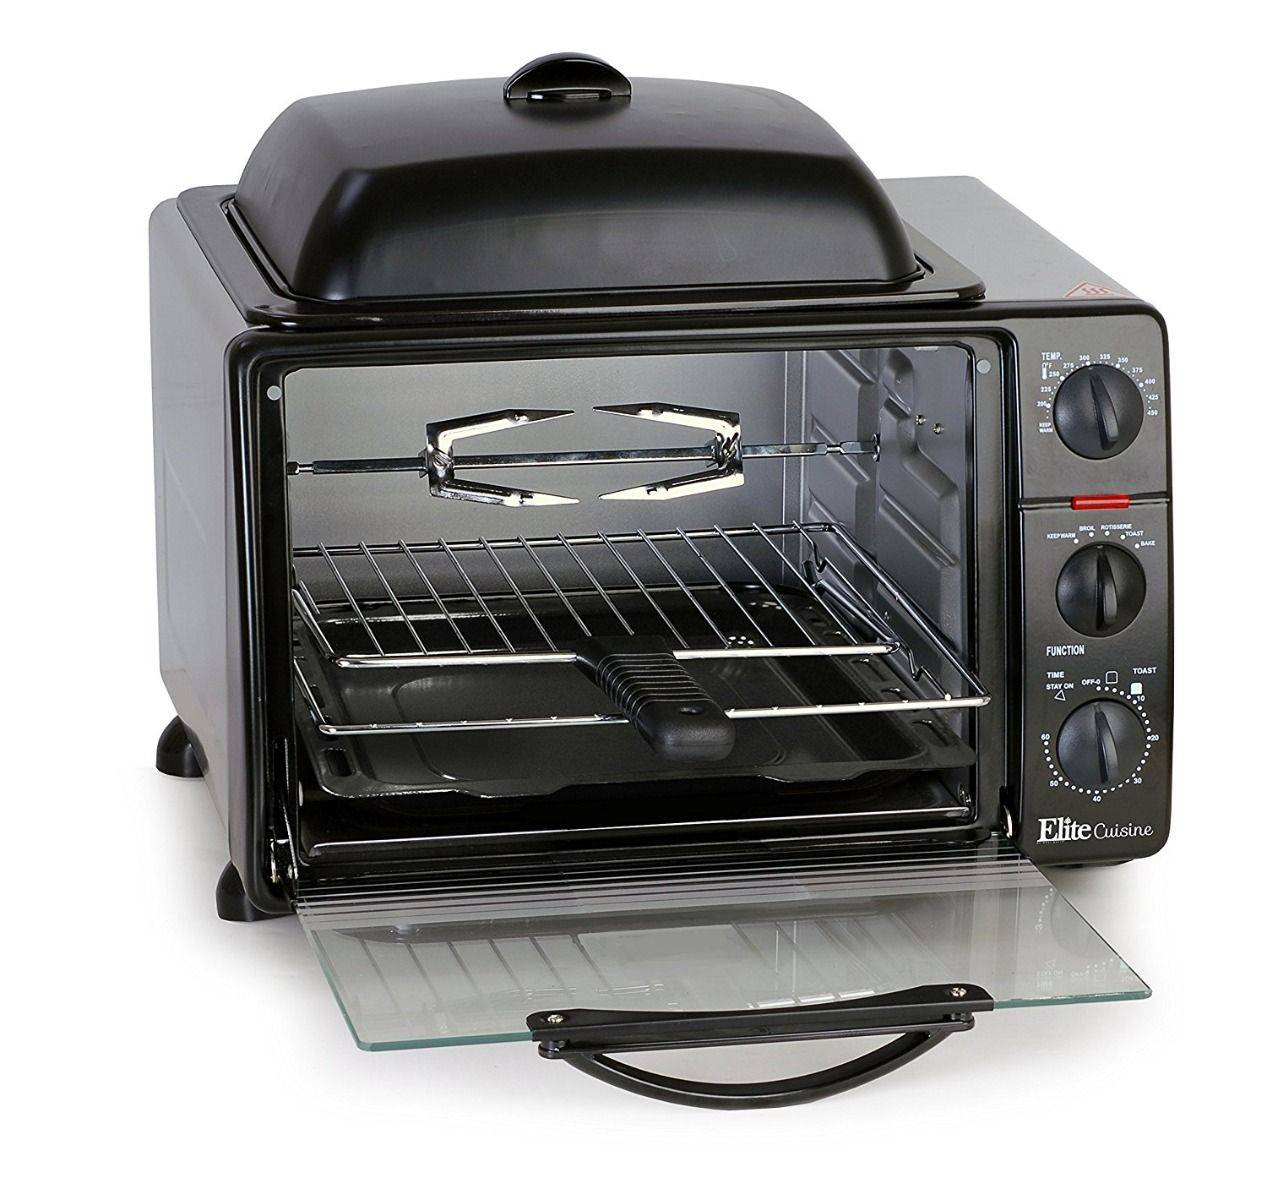 Elite Cuisine 6-Slice Toaster Oven with Rotisserie and Grill/Griddle Top